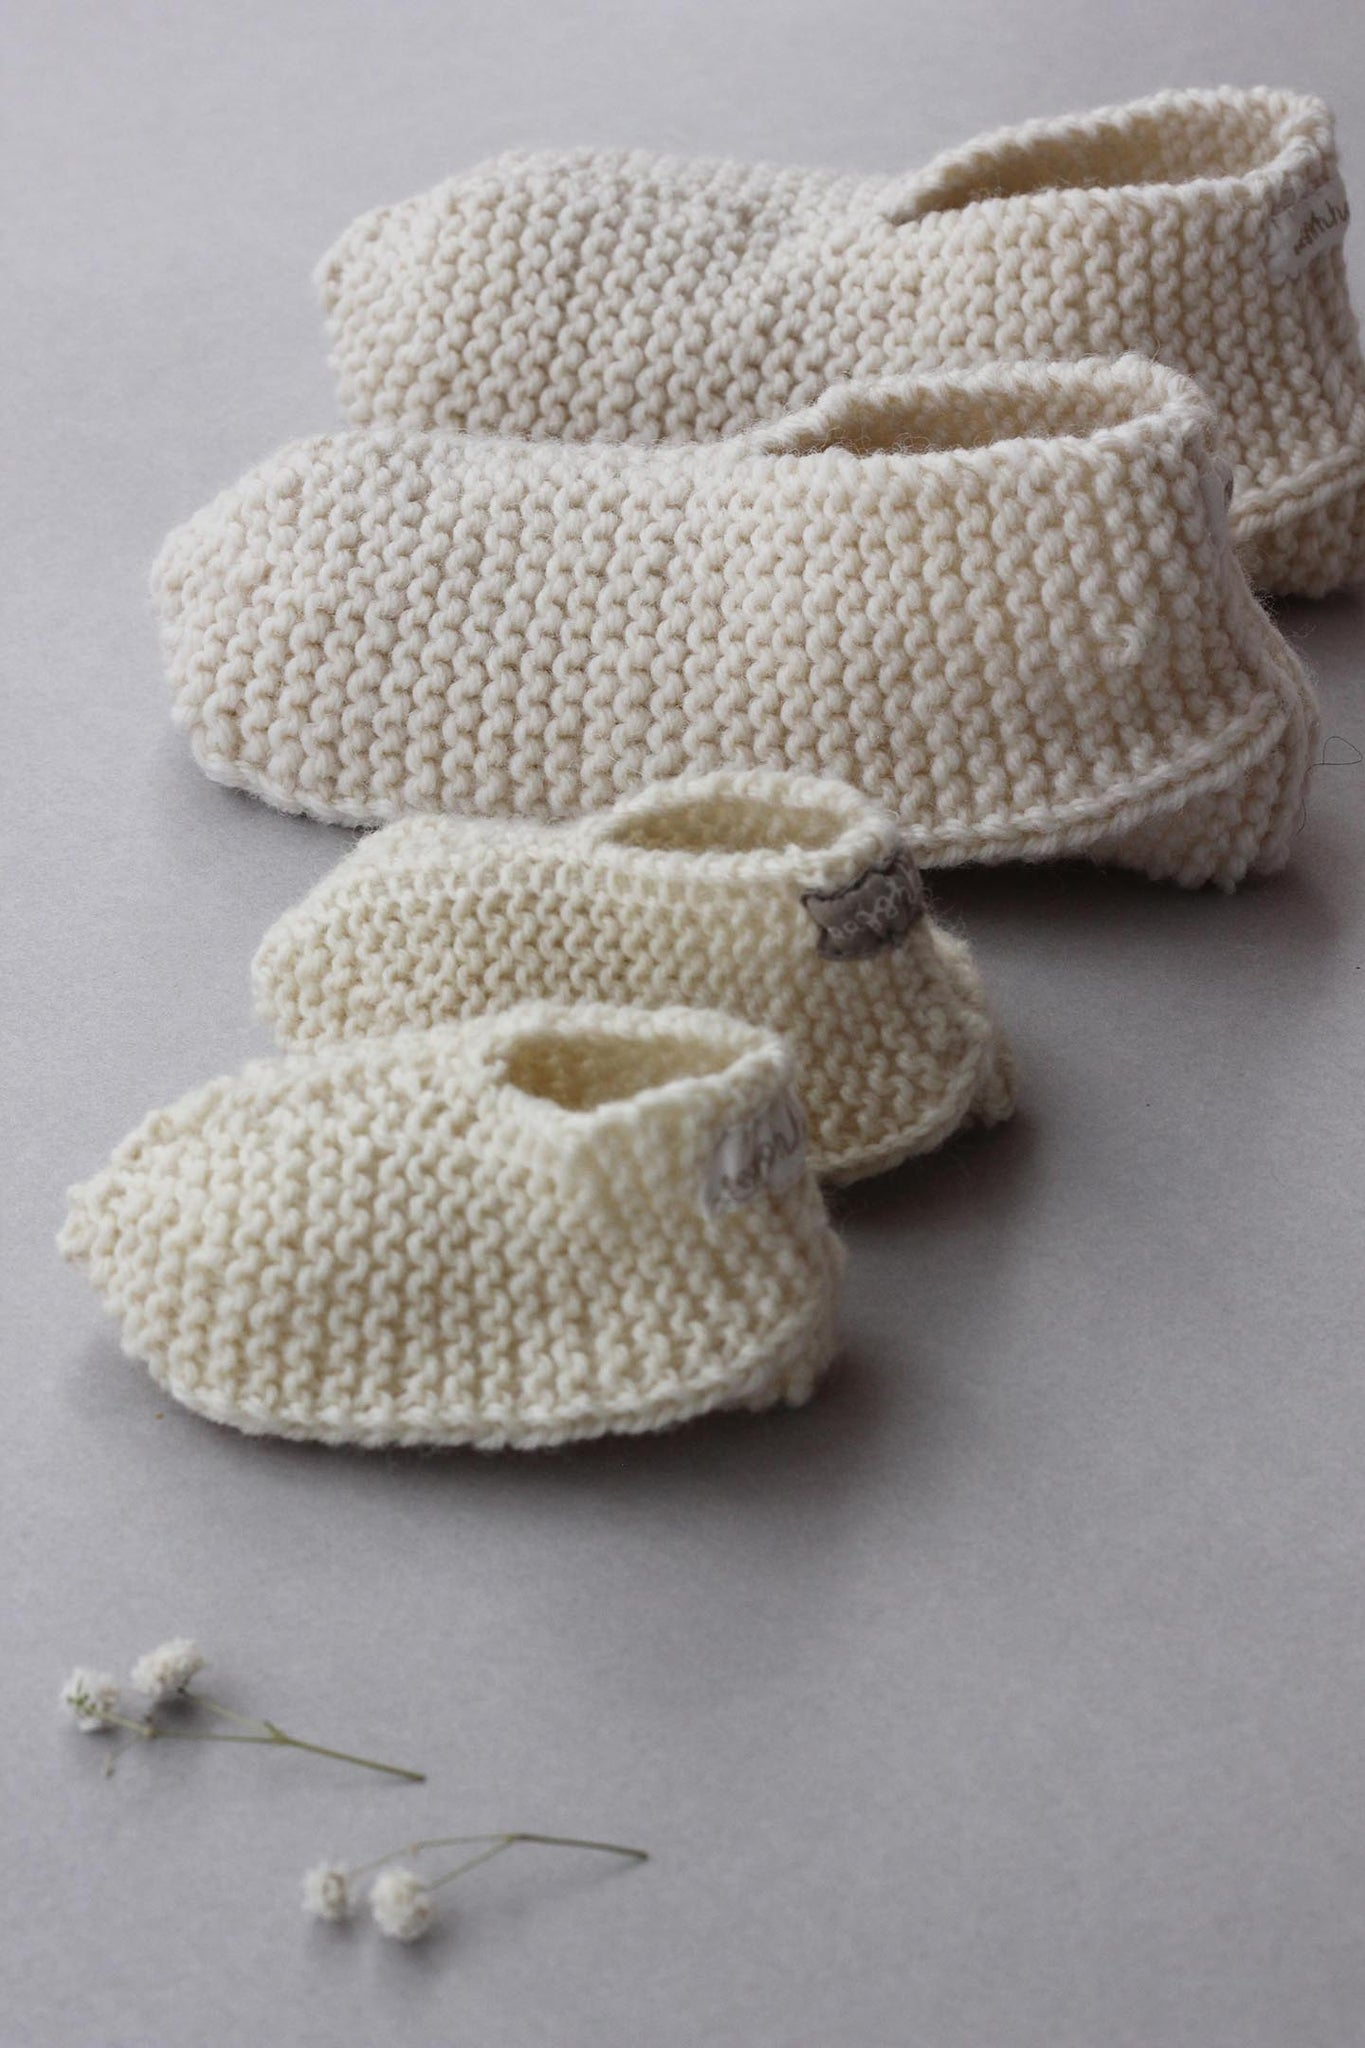 Vintage Mommy Baby Pure Merino Wool Booties - New Mommy & Baby Care Bundle - Set of 2 Booties